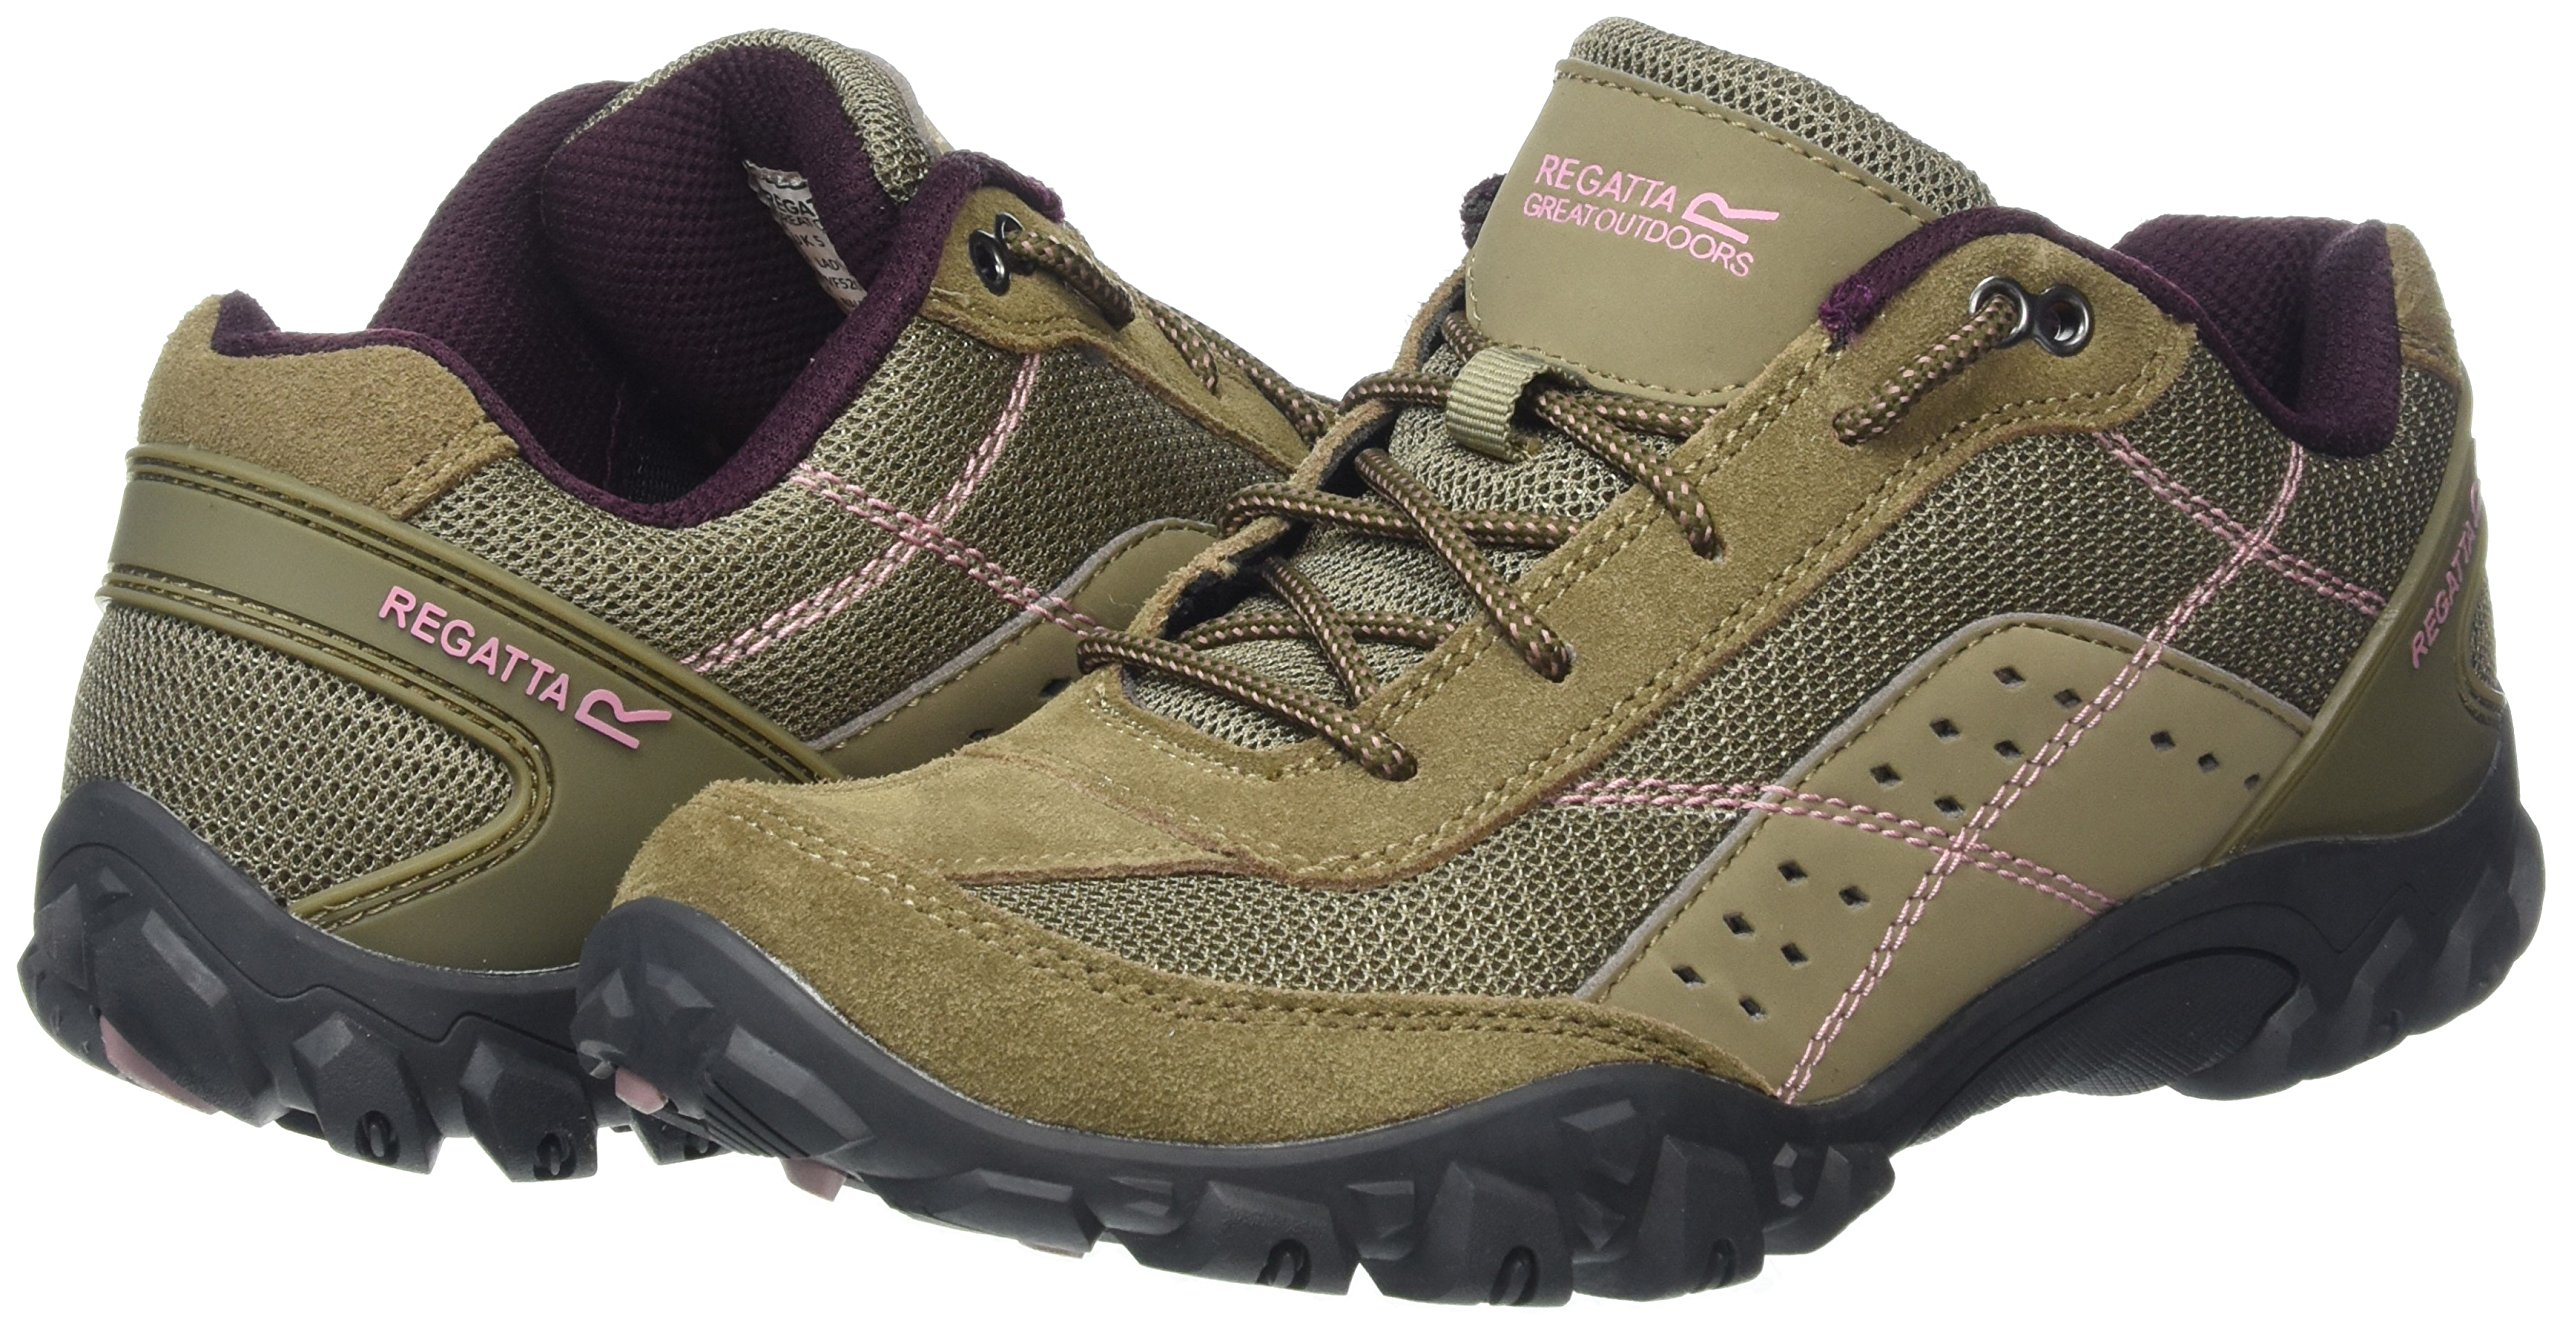 Regatta Lady Stonegate, Women's Low Rise Hiking Boots 5